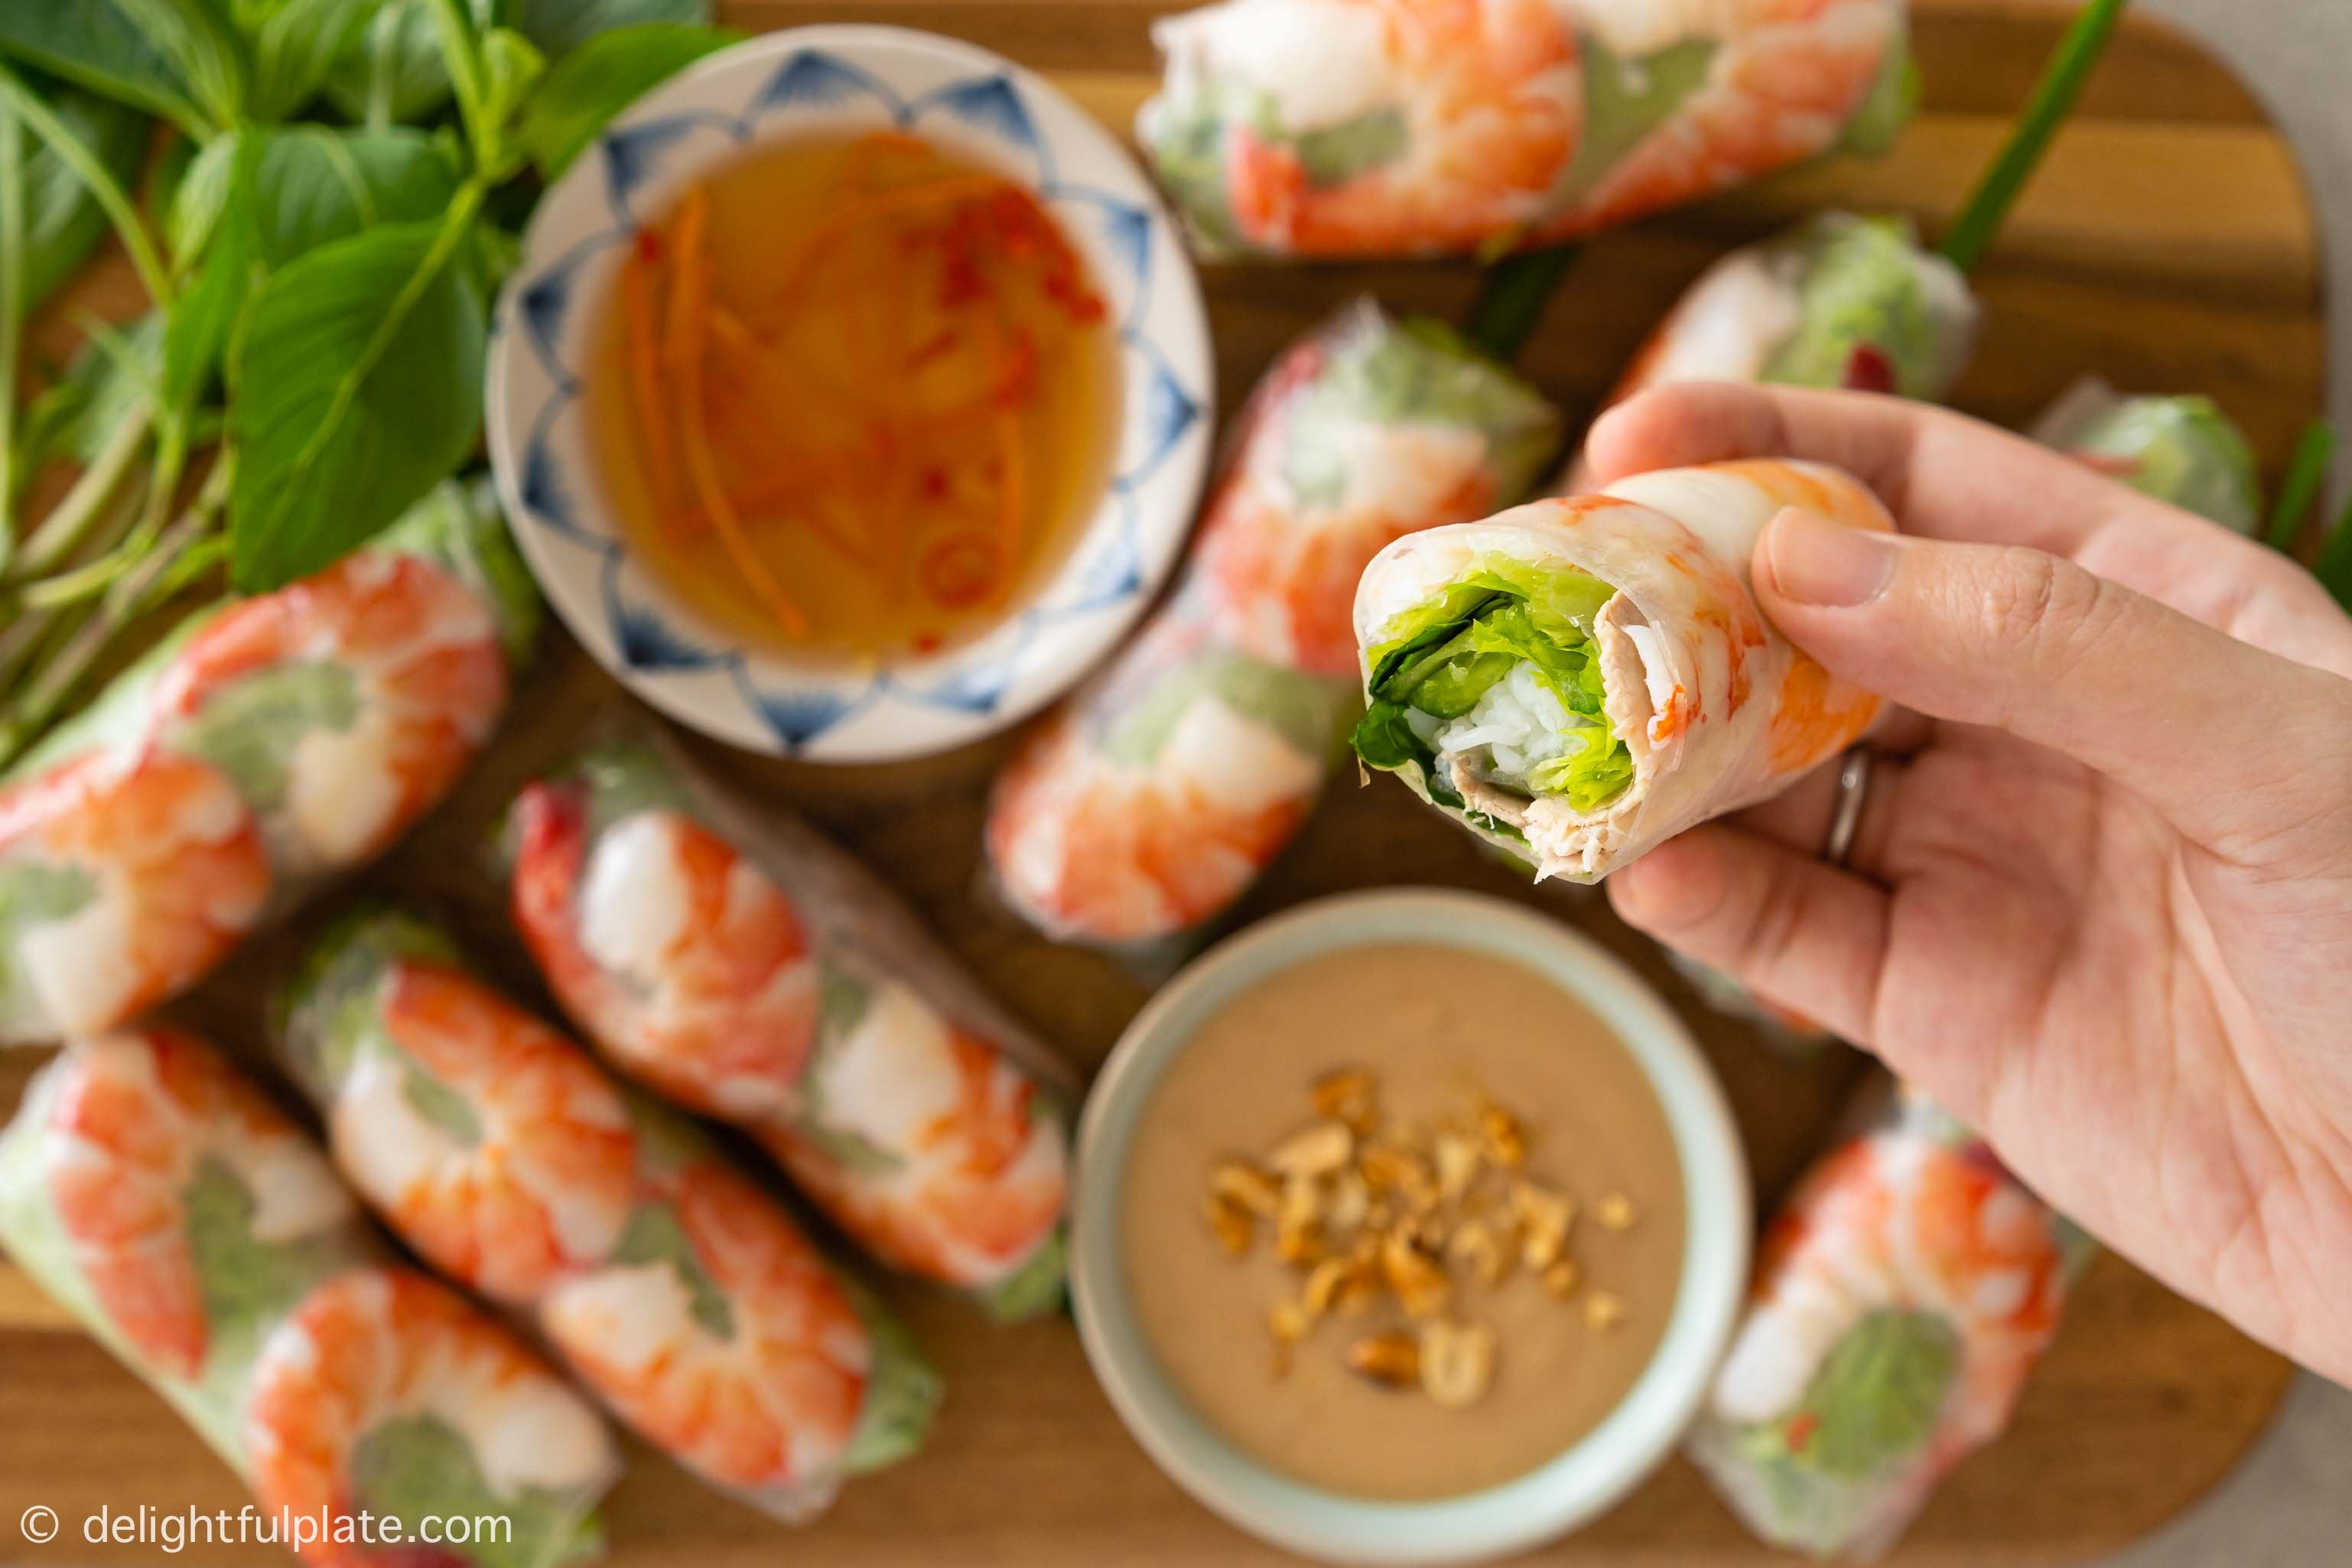 a Vietnamese spring roll consists of pork, shrimp, vermicelli noodles, lettuce and herbs